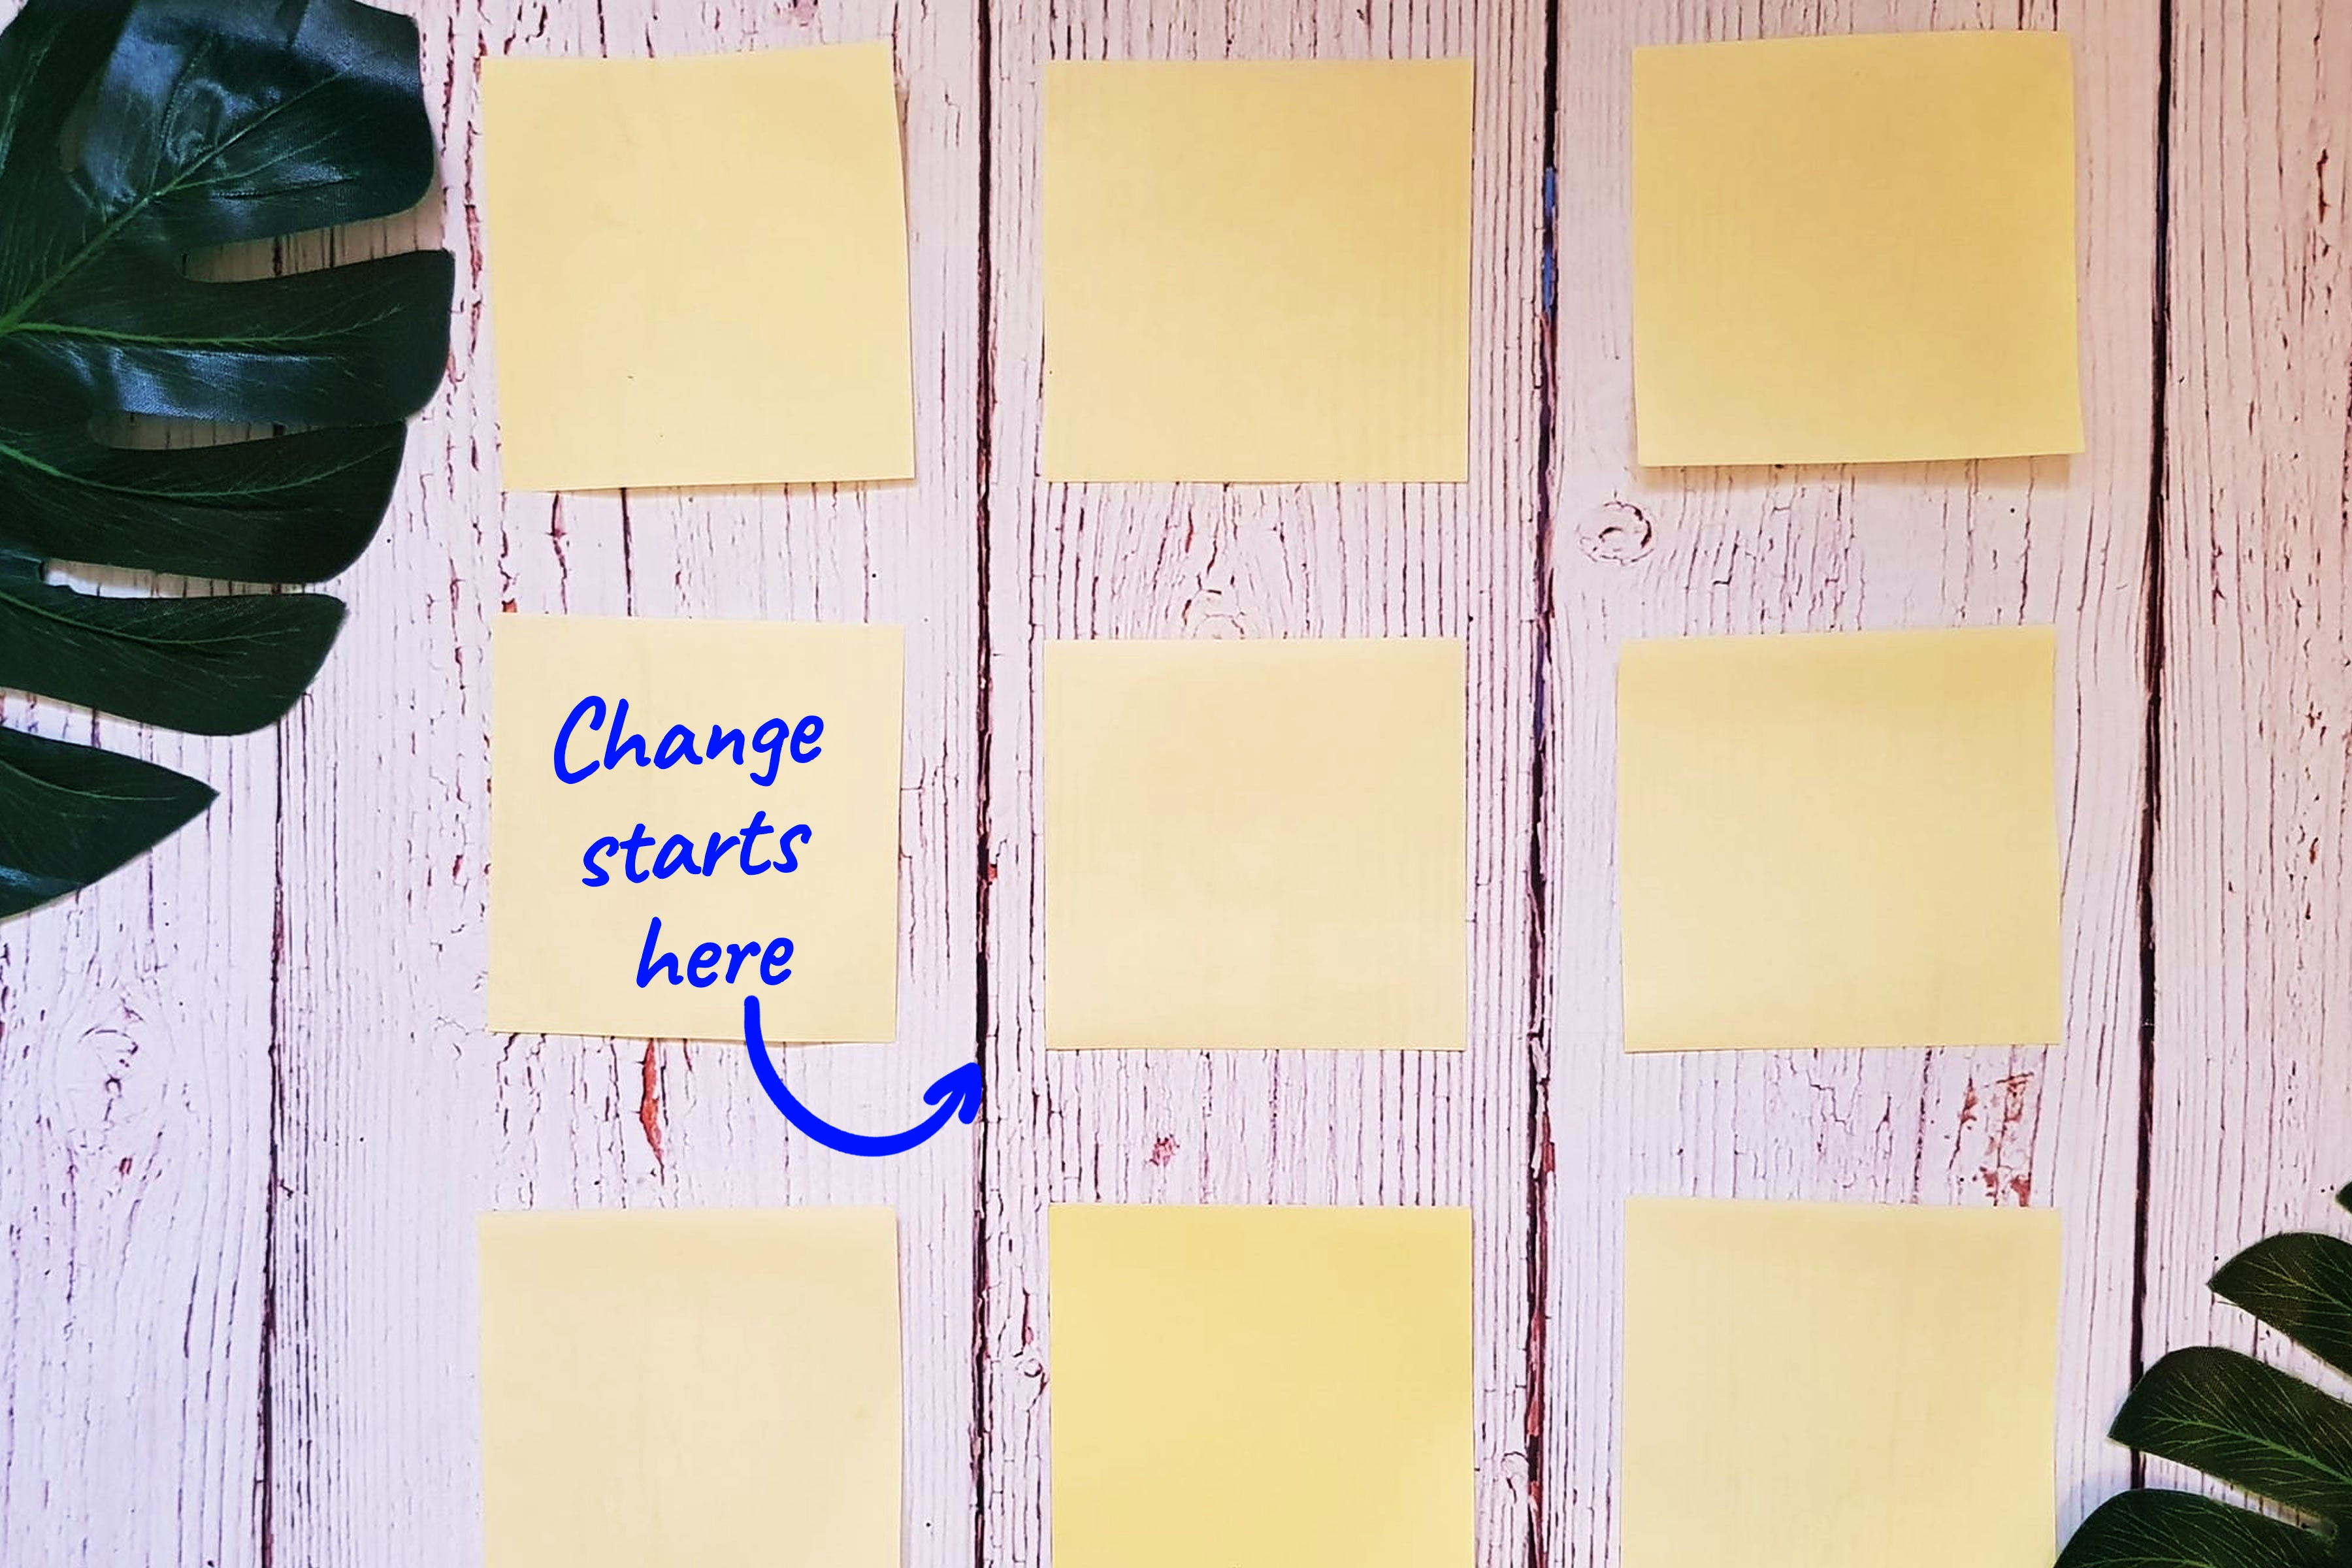 post it notes on a wooden board